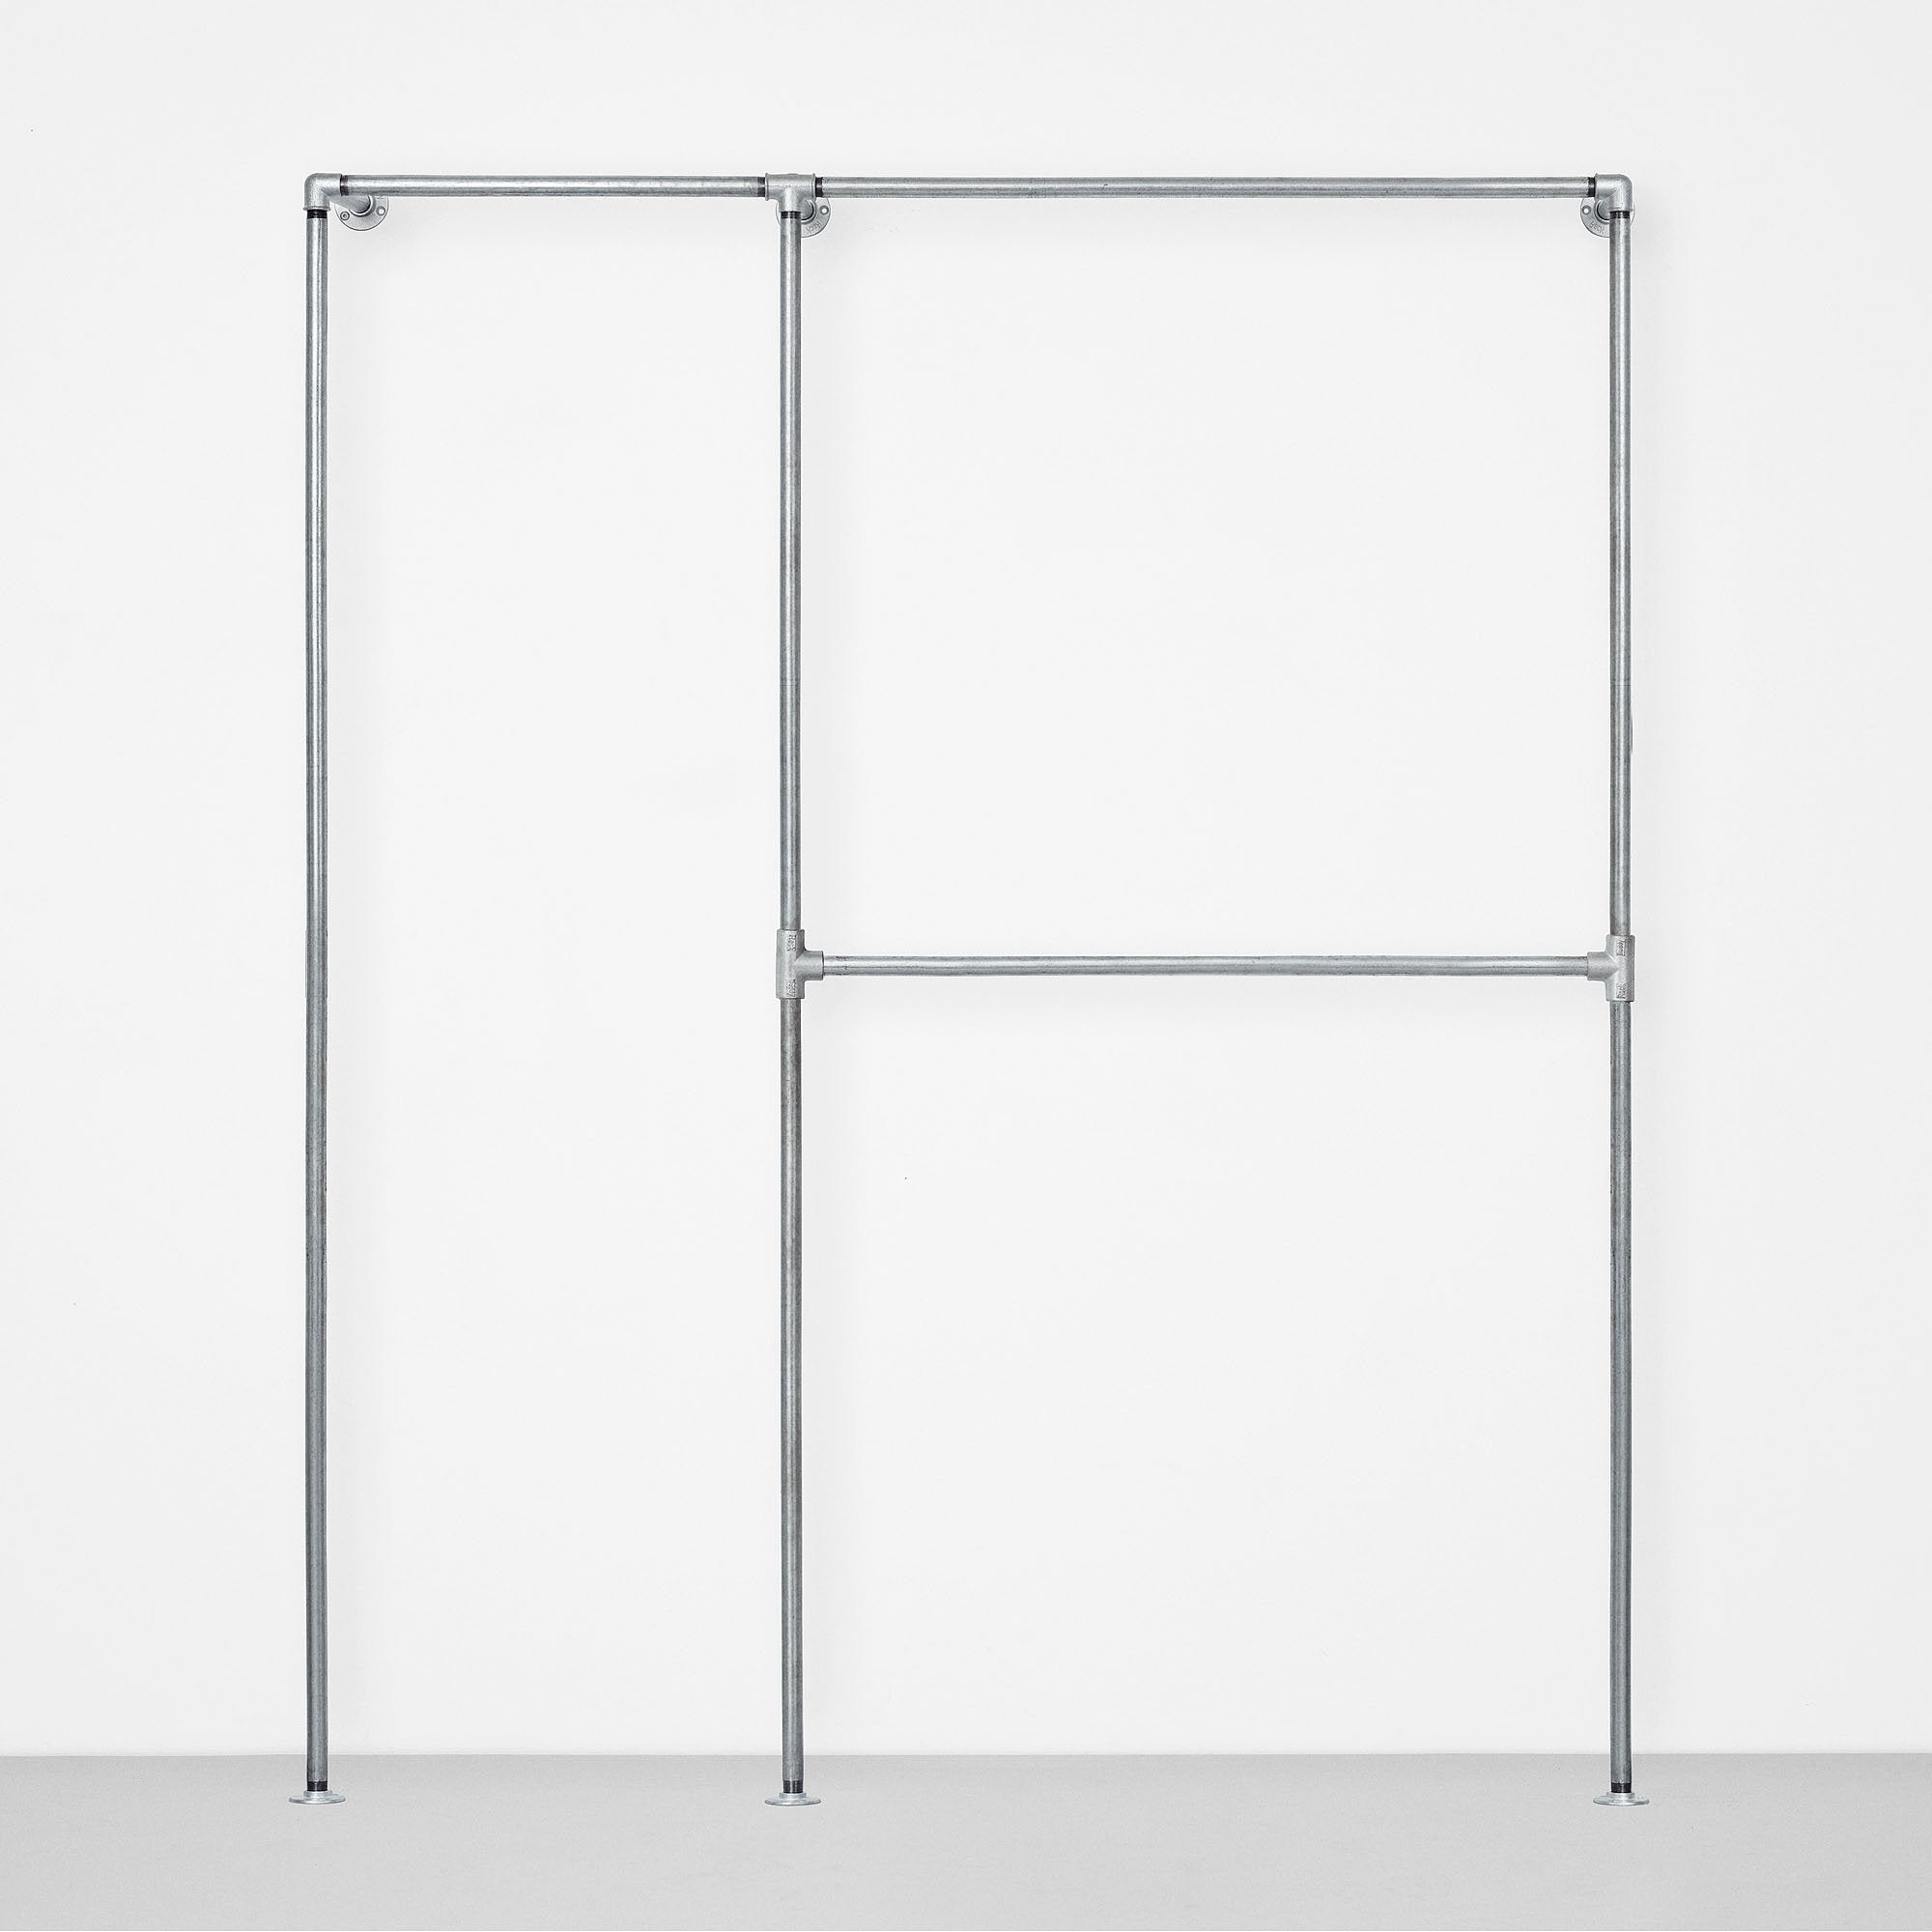 Silver walk-in solution. The perfect minimalistic look with an industrial twist. Comes in different sizes so you can create the wardrobe to fit your exact space.